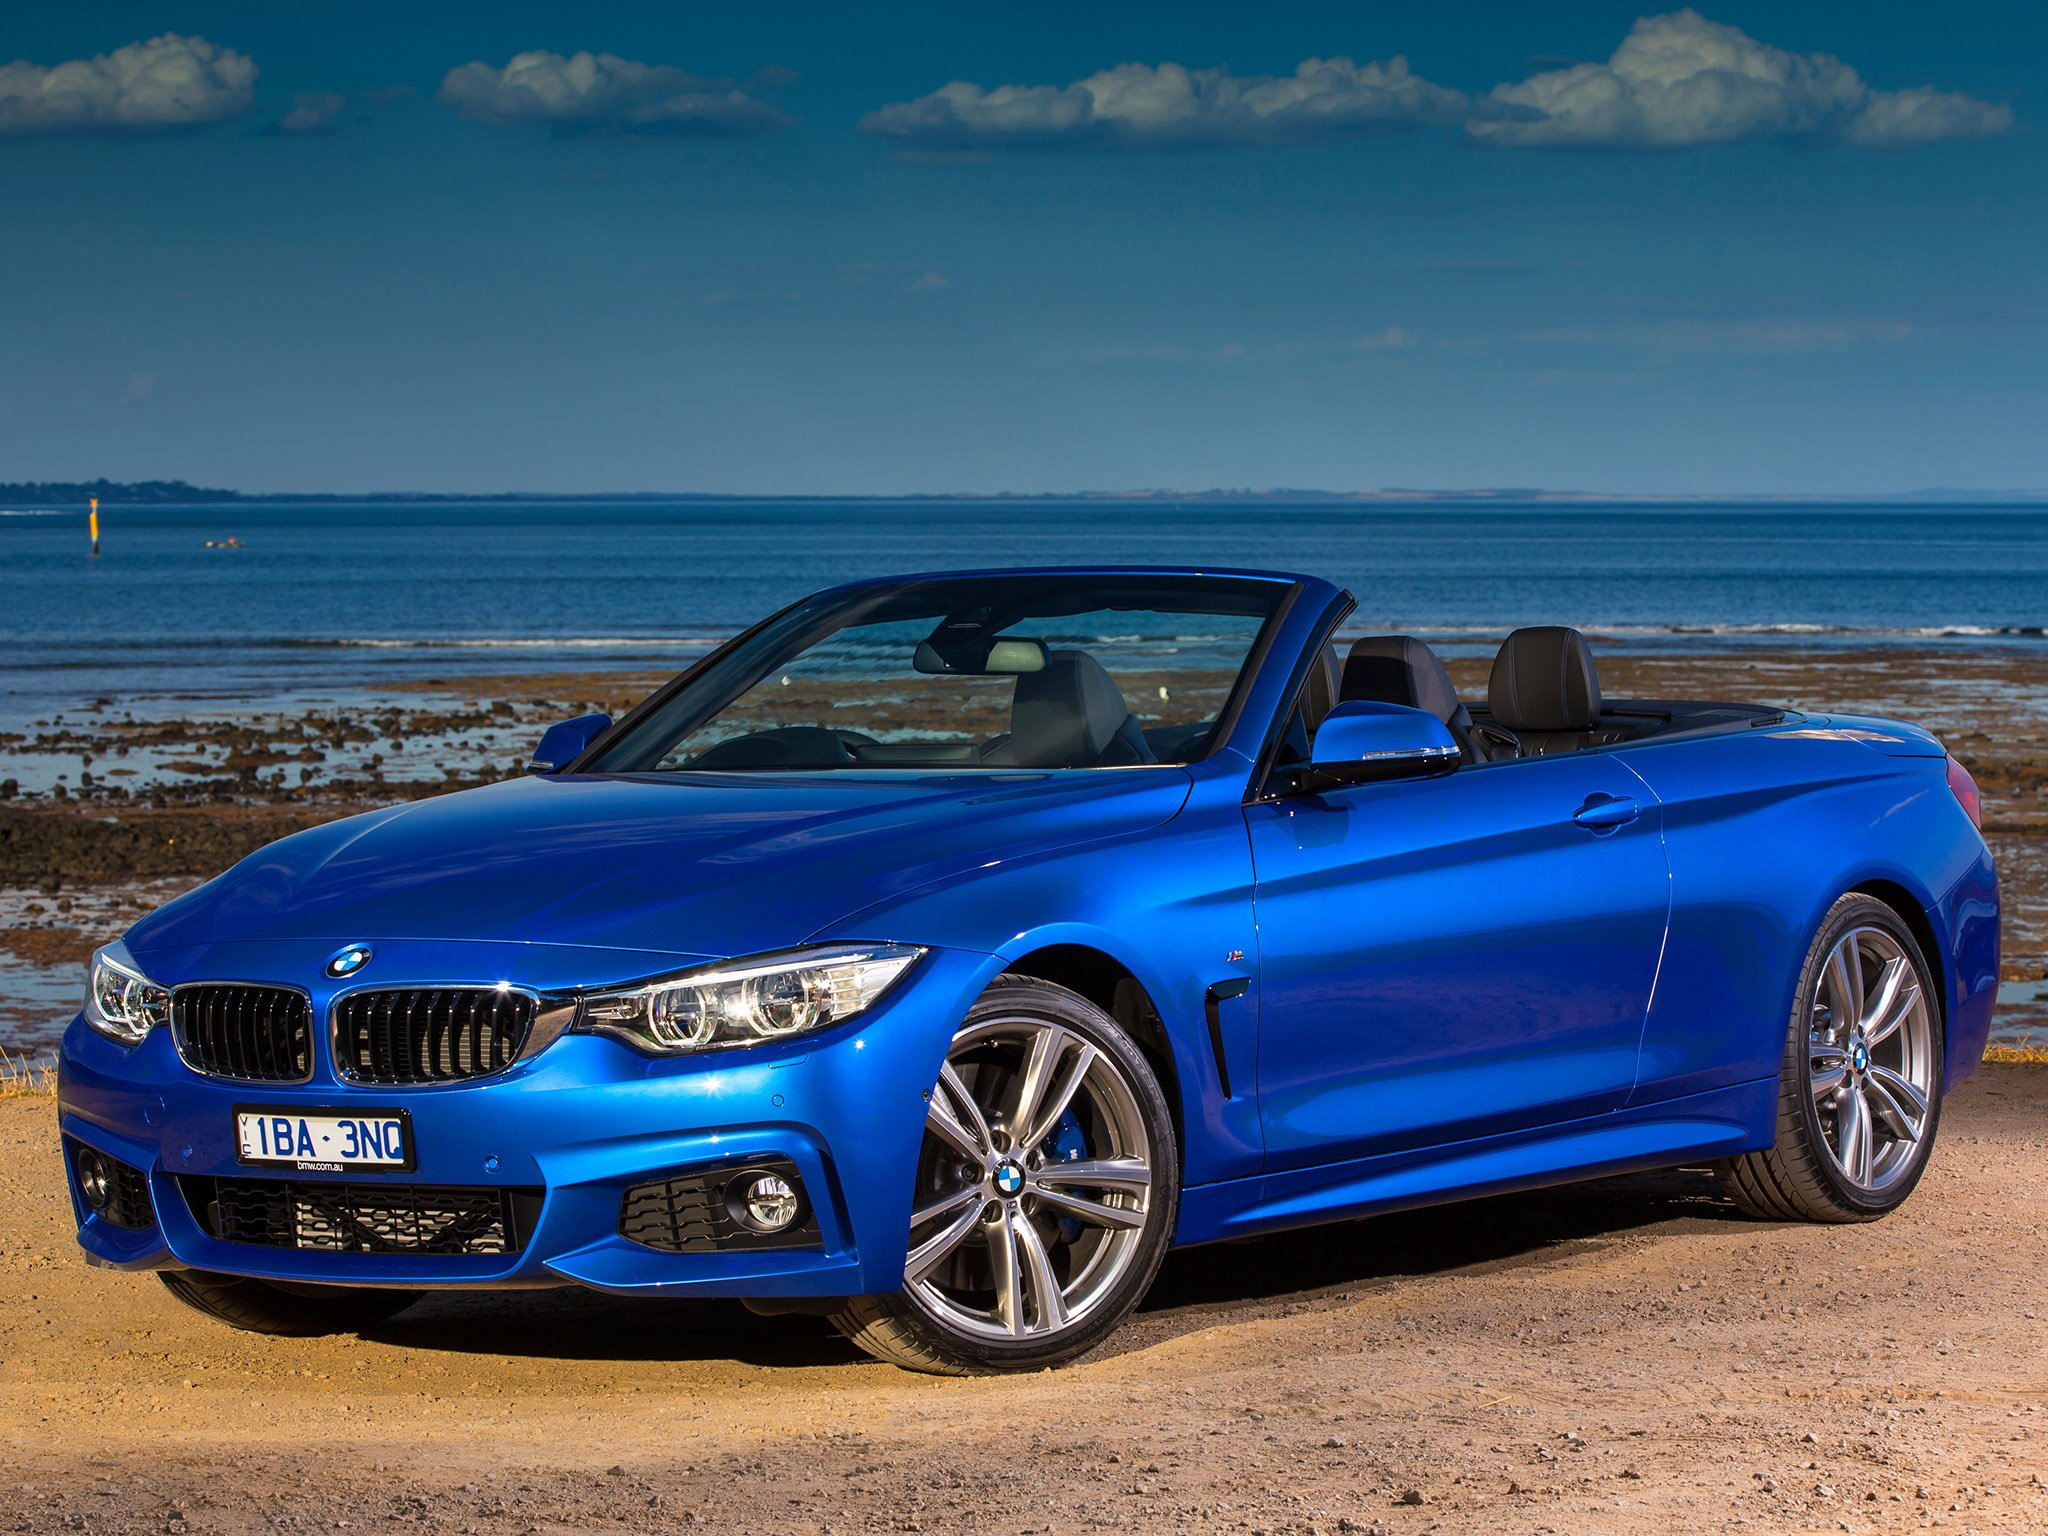 bmw 4 series 435i cabrio m sport package wallpaper 2048x1536 384593 wallpaperup. Black Bedroom Furniture Sets. Home Design Ideas